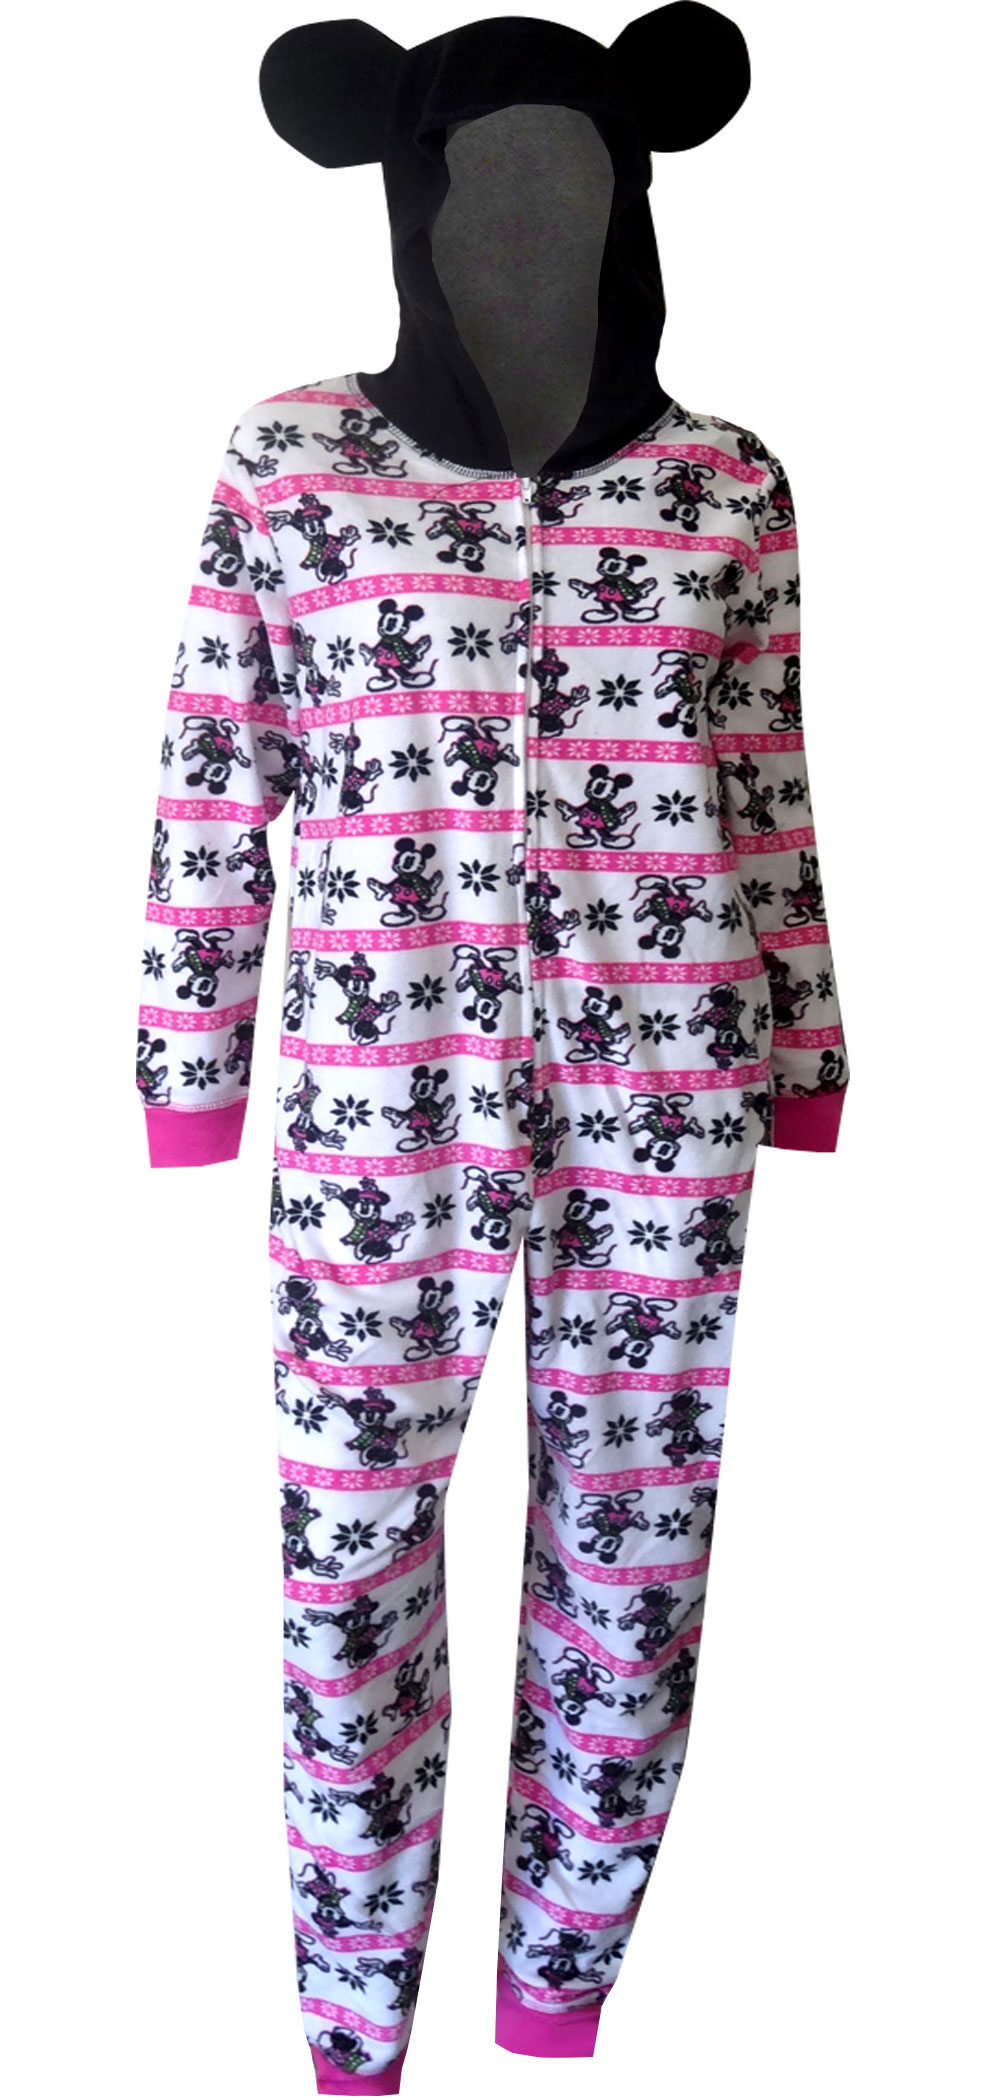 Enjoy free shipping and easy returns every day at Kohl's. Find great deals on One-Piece Pajamas at Kohl's today!